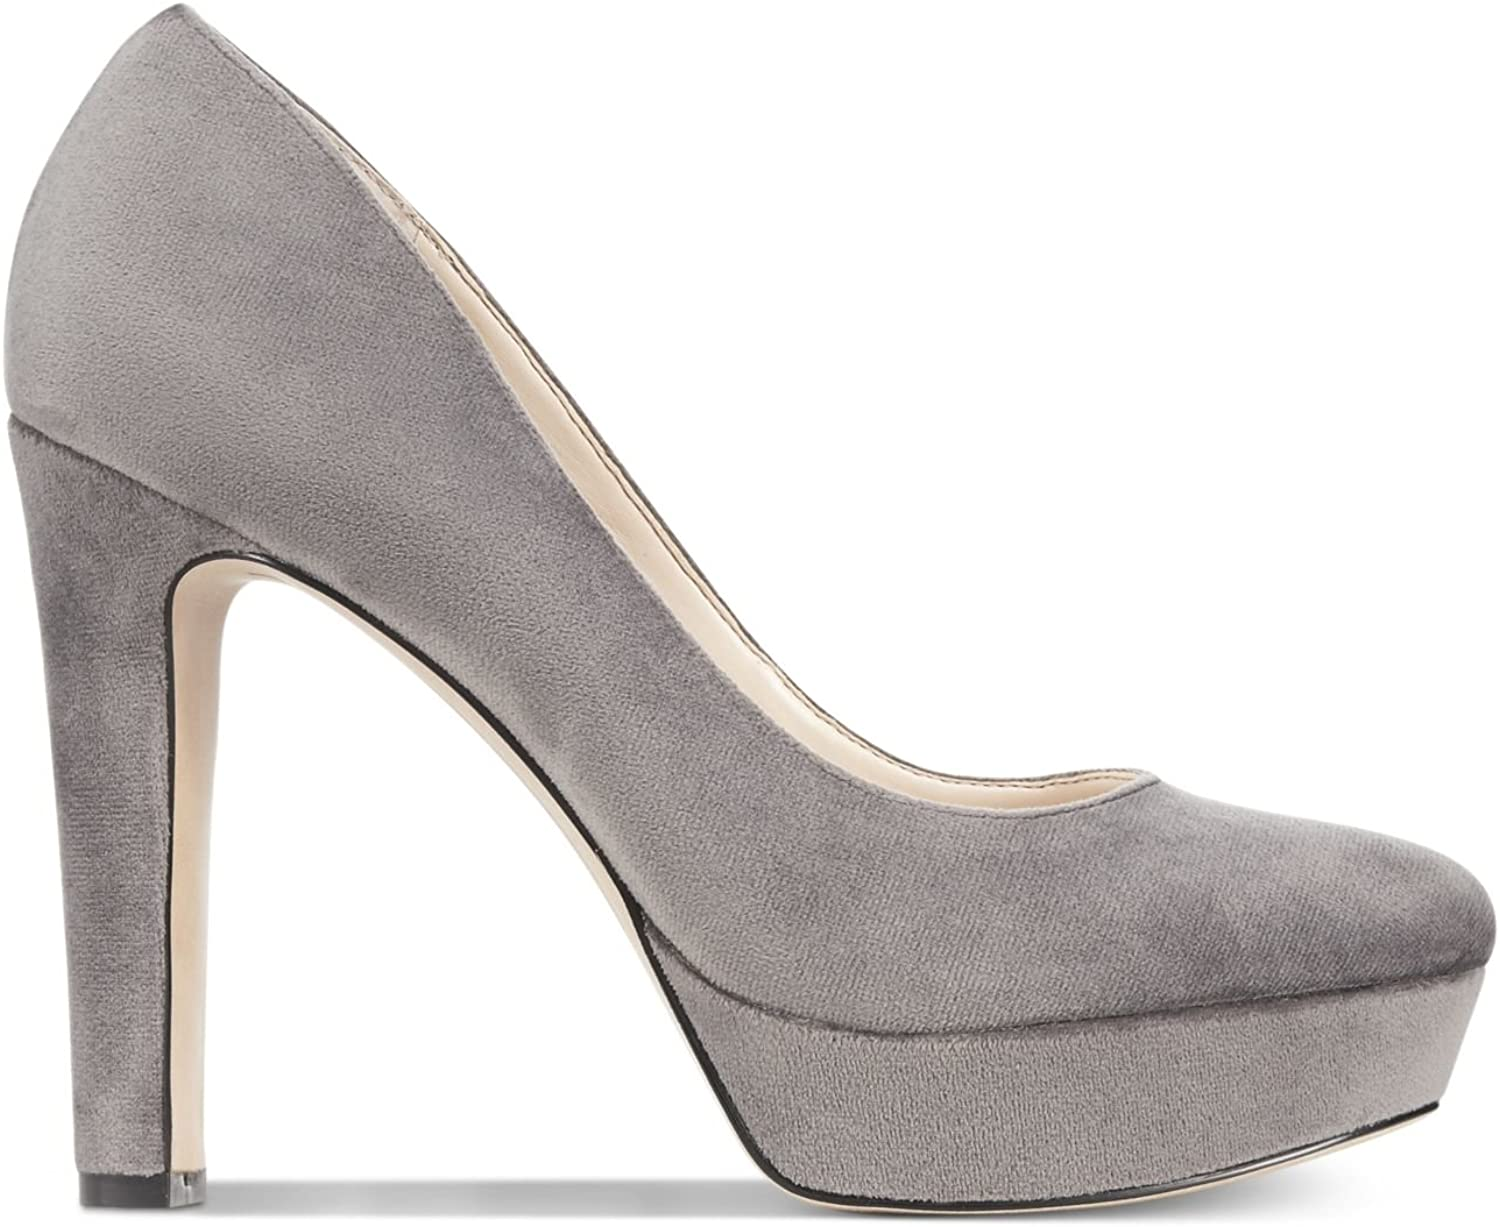 INC International Concepts Womens Anton Suede Closed Toe, Dk Grey, Size 6.0